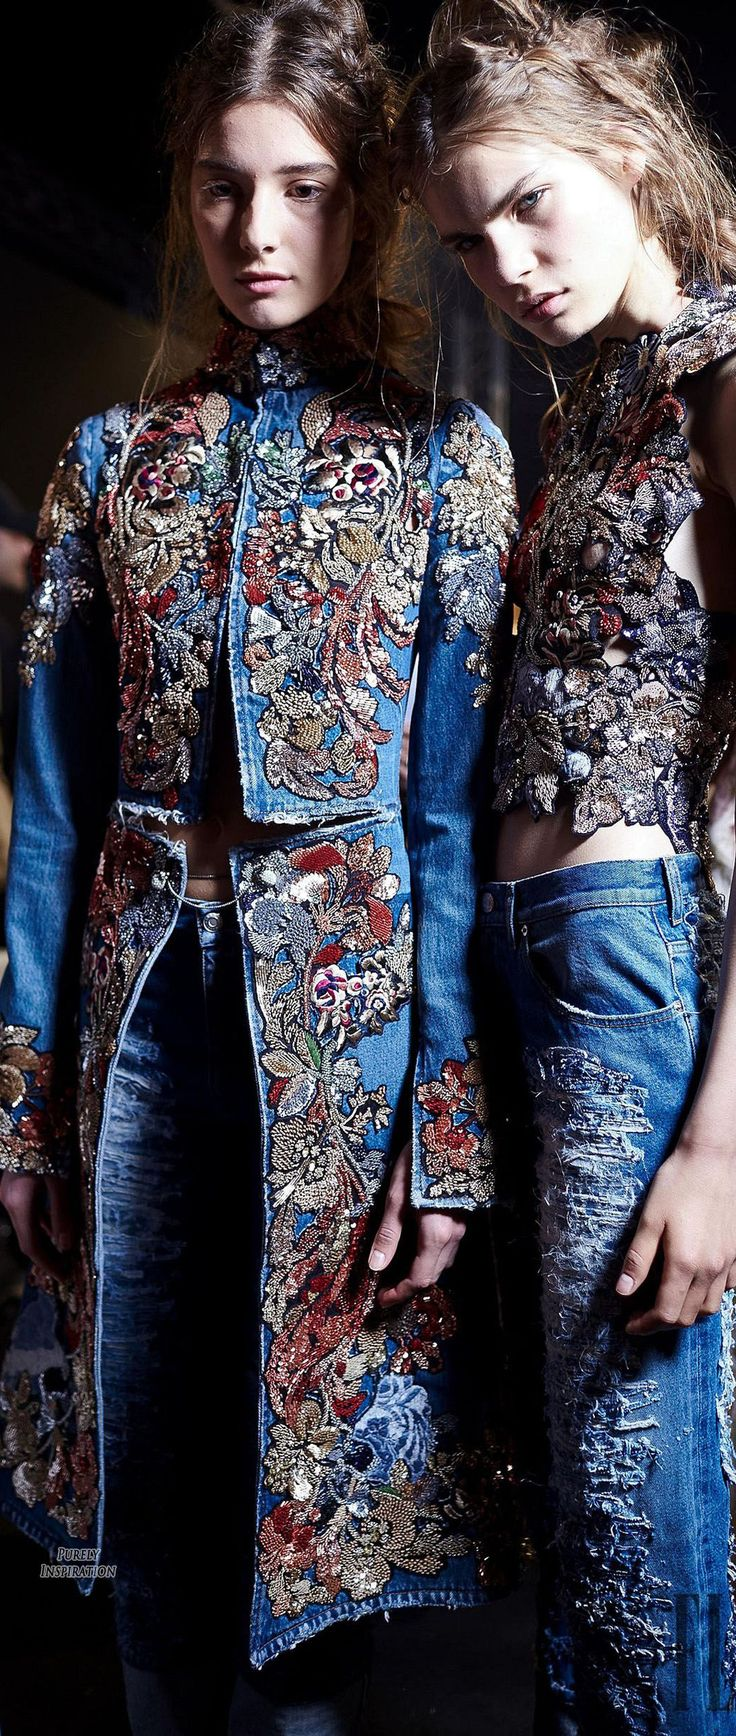 Alexander McQueen SS2016 Women's Fashion RTW (runway details)| Purely Inspiration